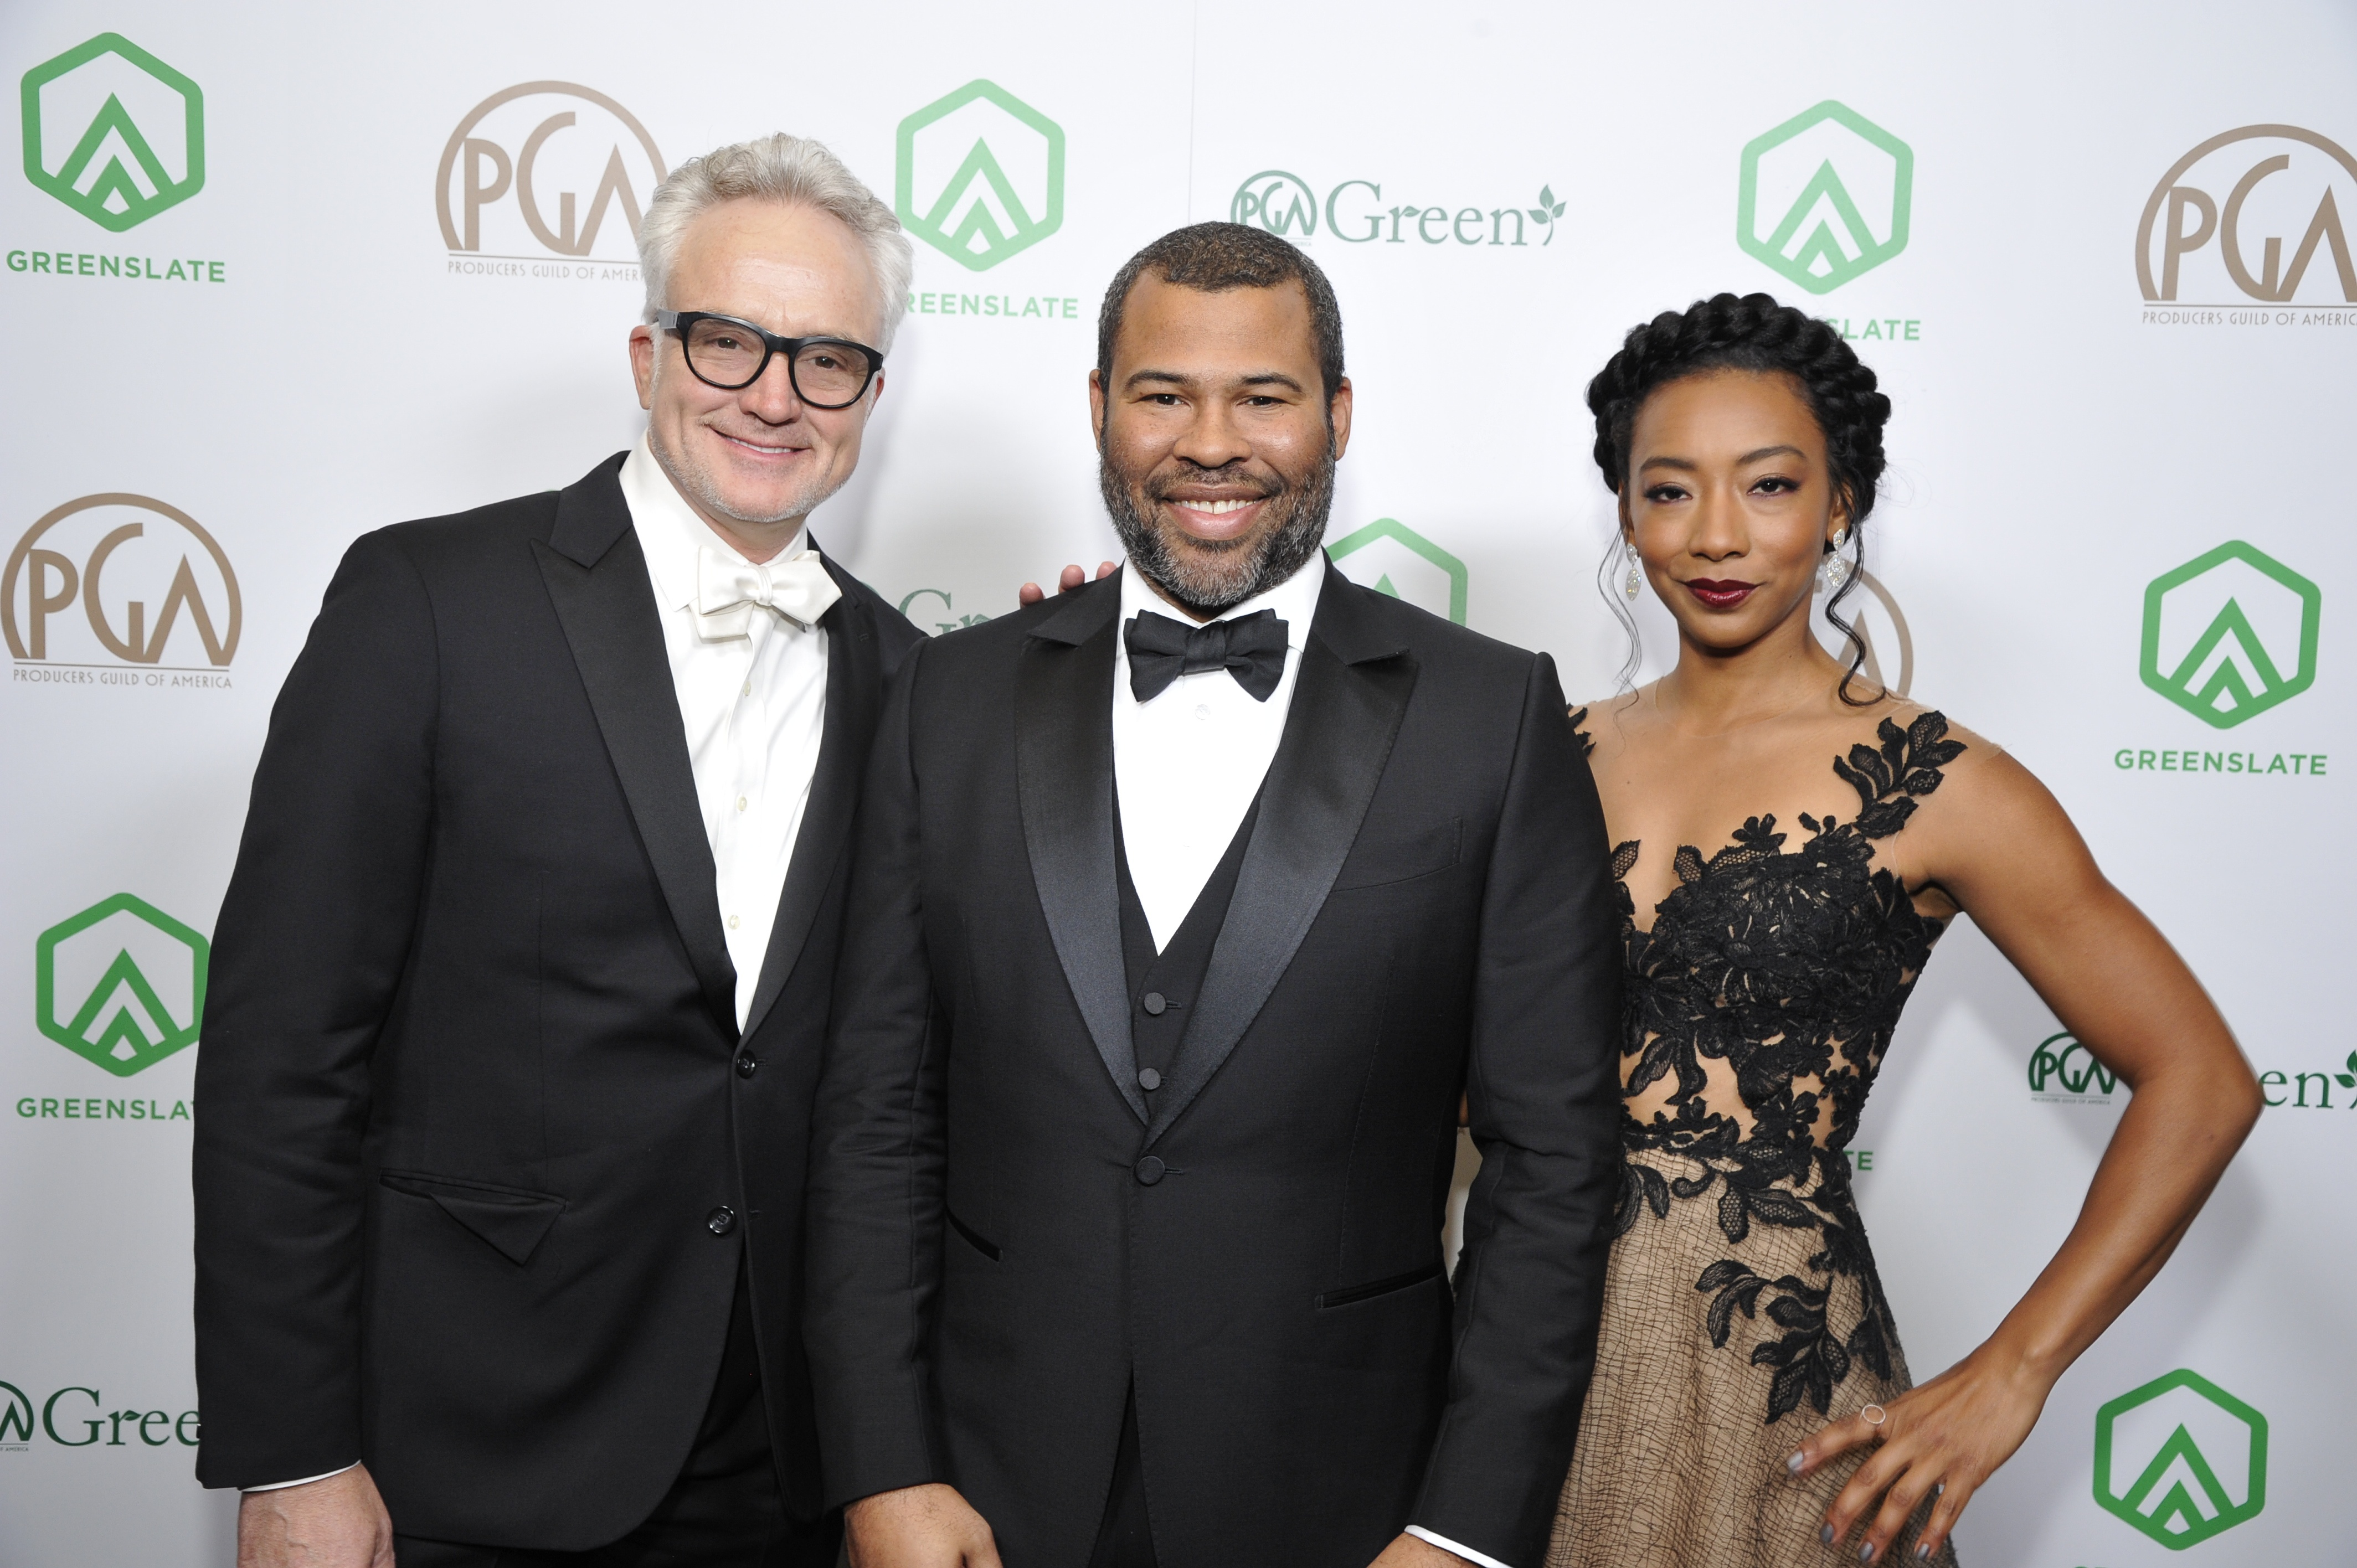 "Get Out's Bradley Whitford, Jordan Peele (nominee for The Darryl F. Zanuck Award for Outstanding Producer of Theatrical Motion Pictures), and Betty Gabriel attend the 29th Annual Producers Guild Awards supported by GreenSlate at The Beverly Hilton Hotel on January 20, 2018 in Beverly Hills, California. (Photo by John Sciulli/Getty Images for GreenSlate).  ""Get Out"" received the Stanley Kramer Award."